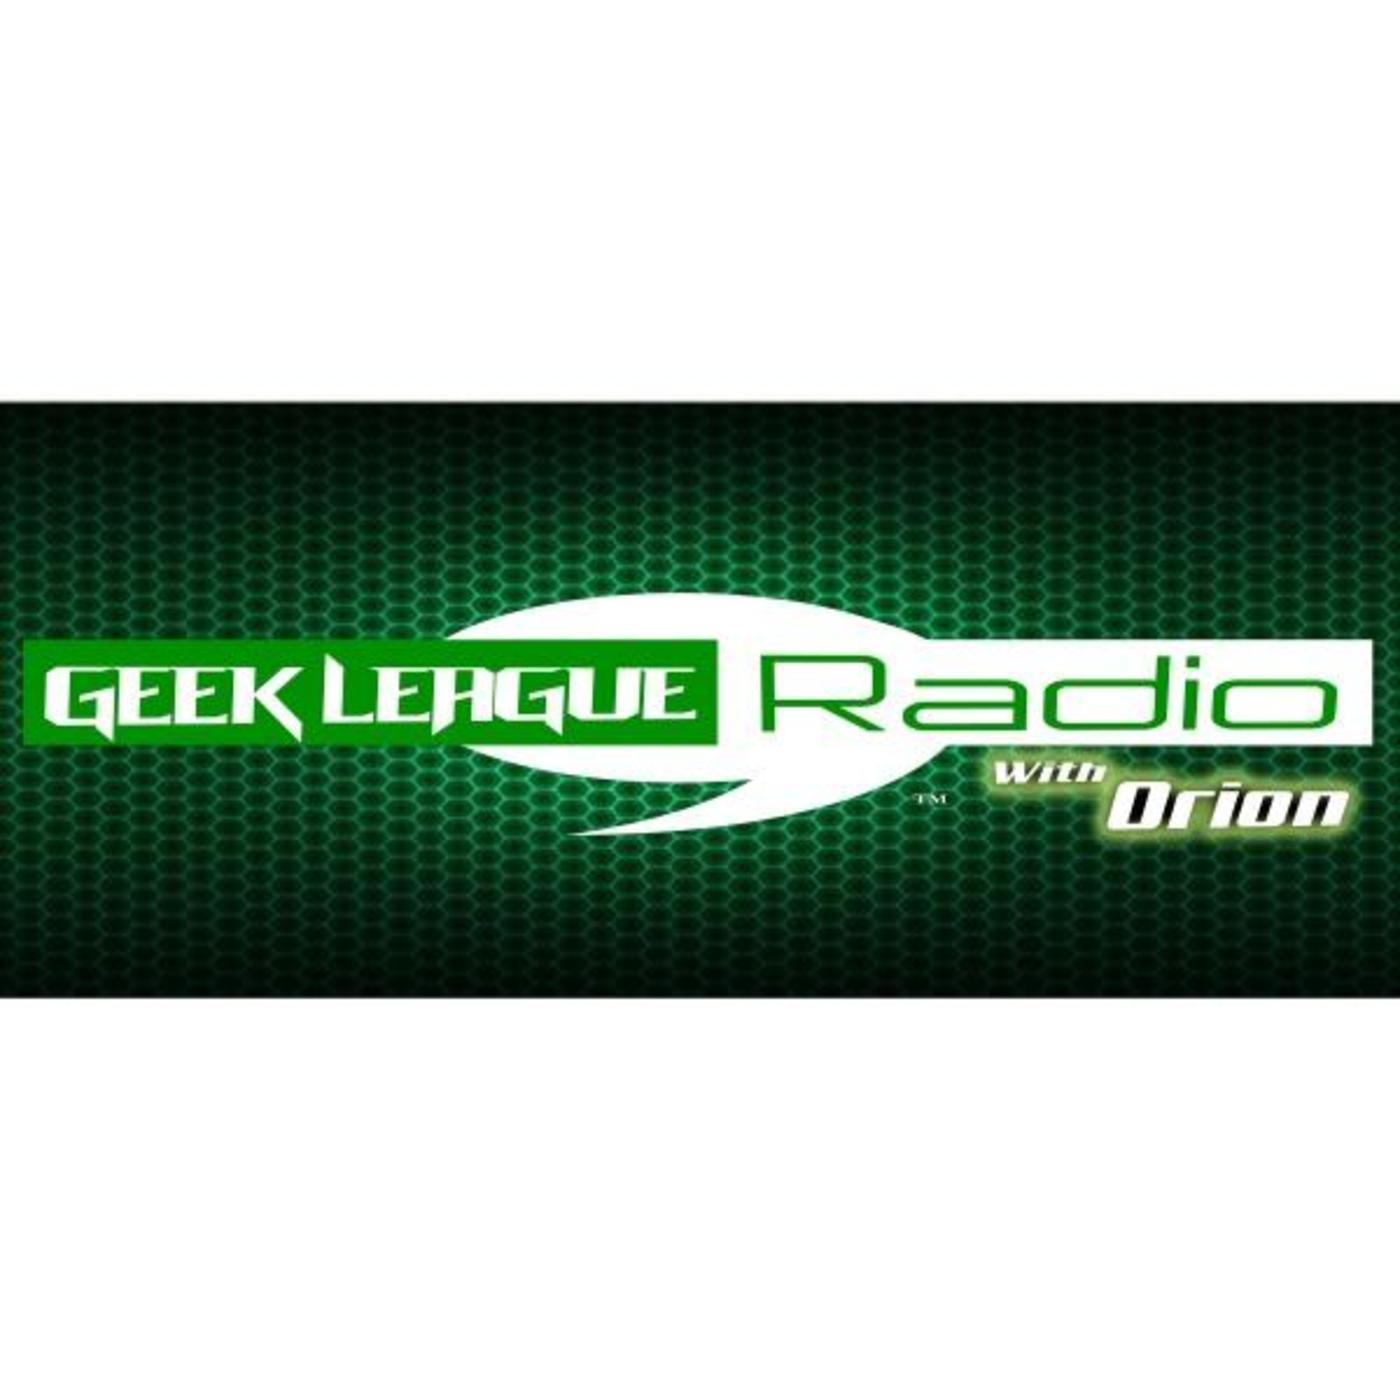 GEEK LEAGUE RADIO